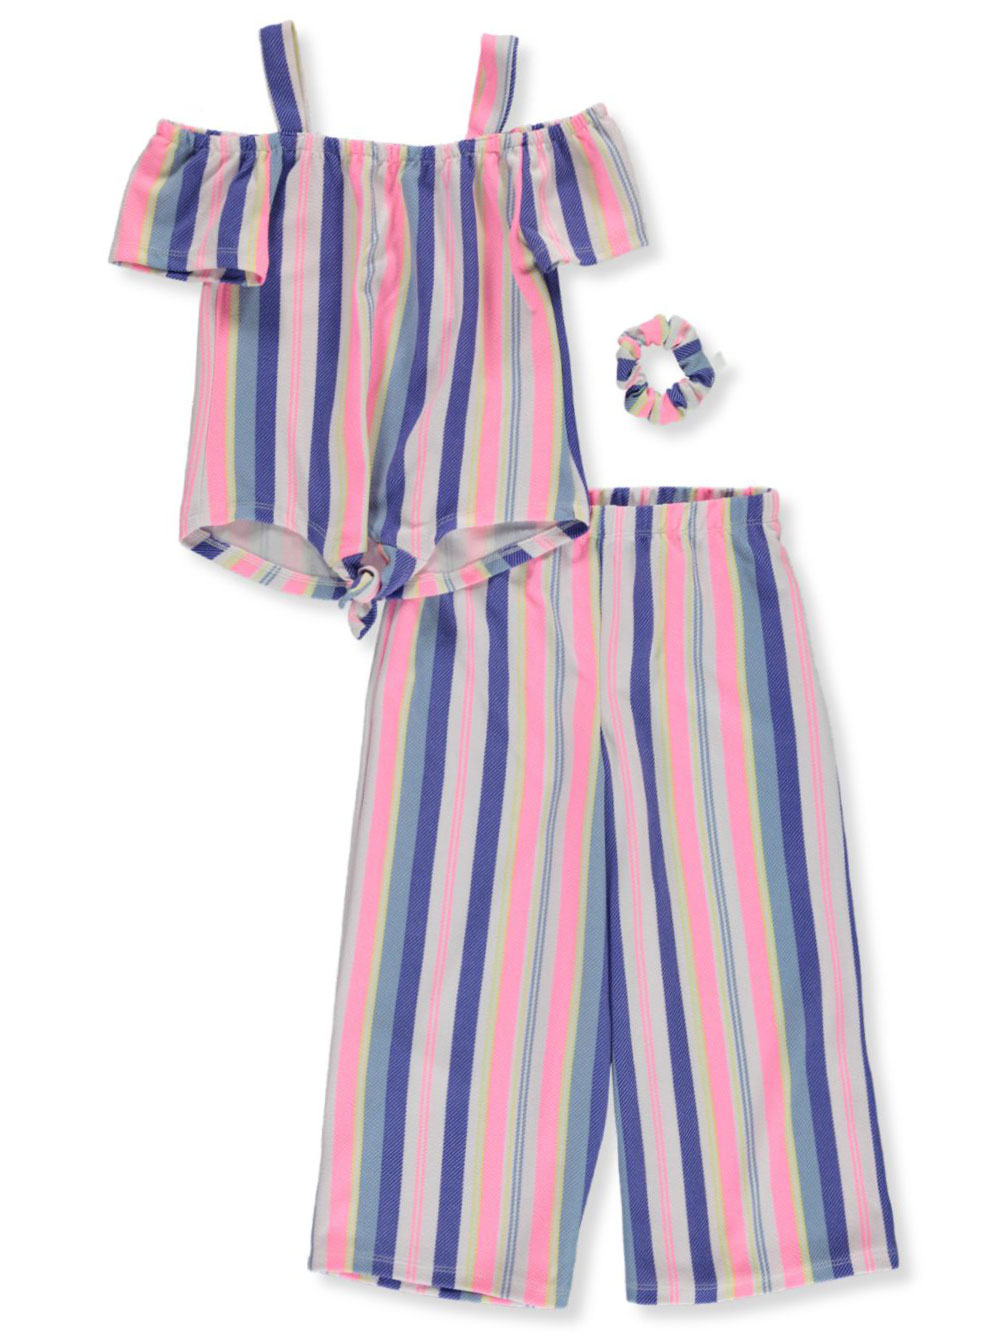 Size 5 Pant Sets for Girls